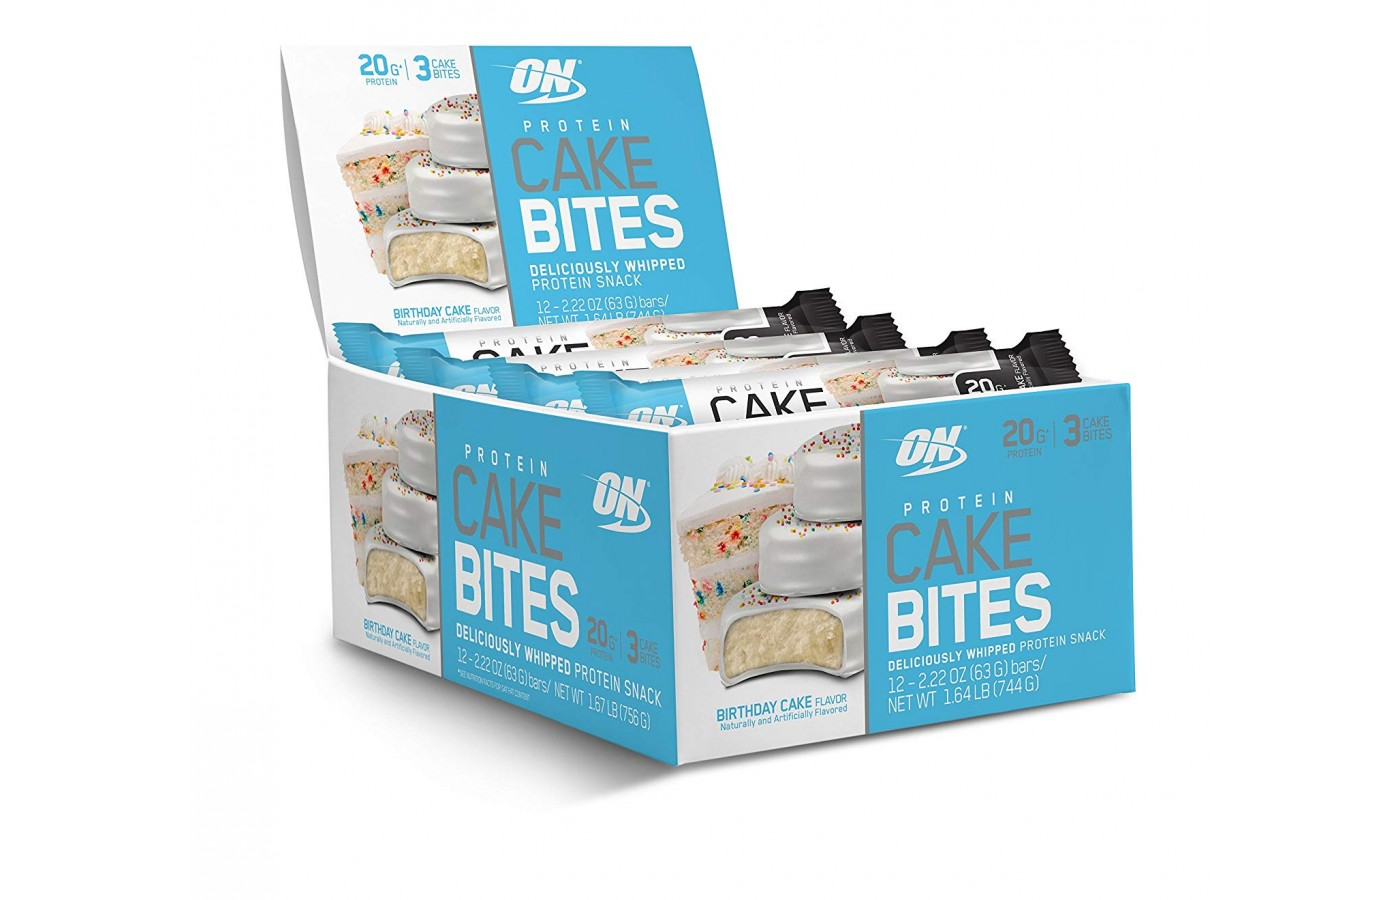 Optimum Nutrition Protein Cake Bites Reviewed On Box